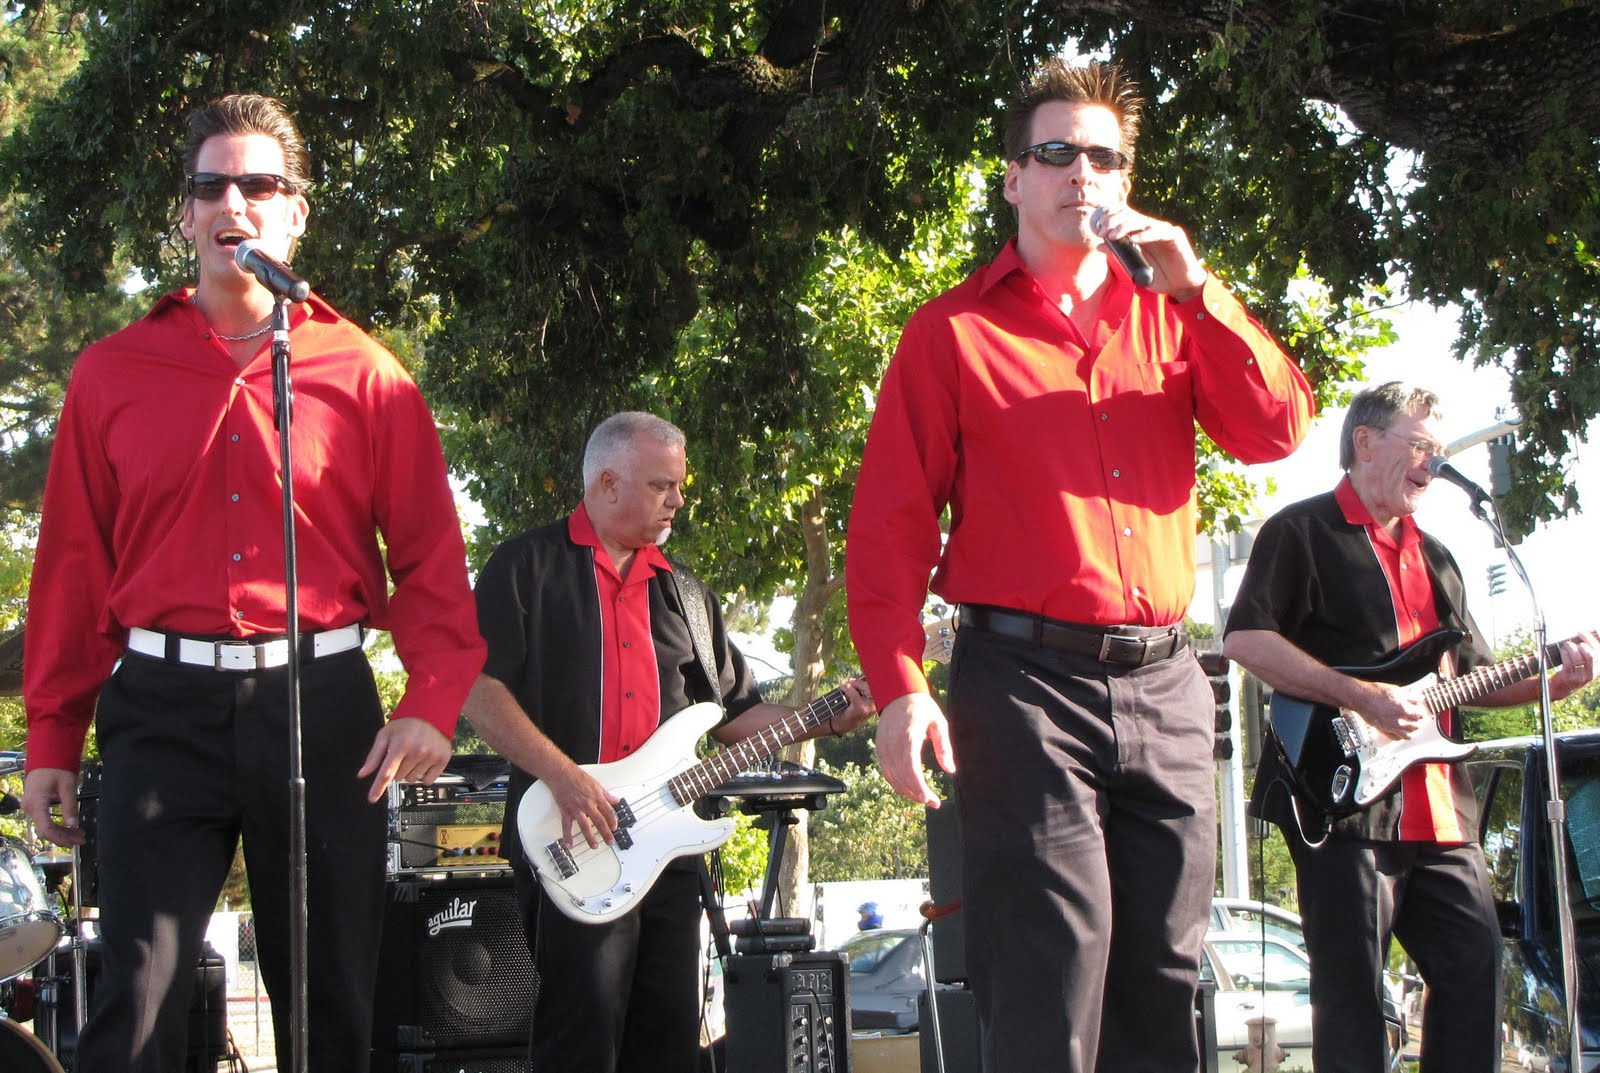 Celebrity Gems Entertainment: 50's Rock and Roll band turns